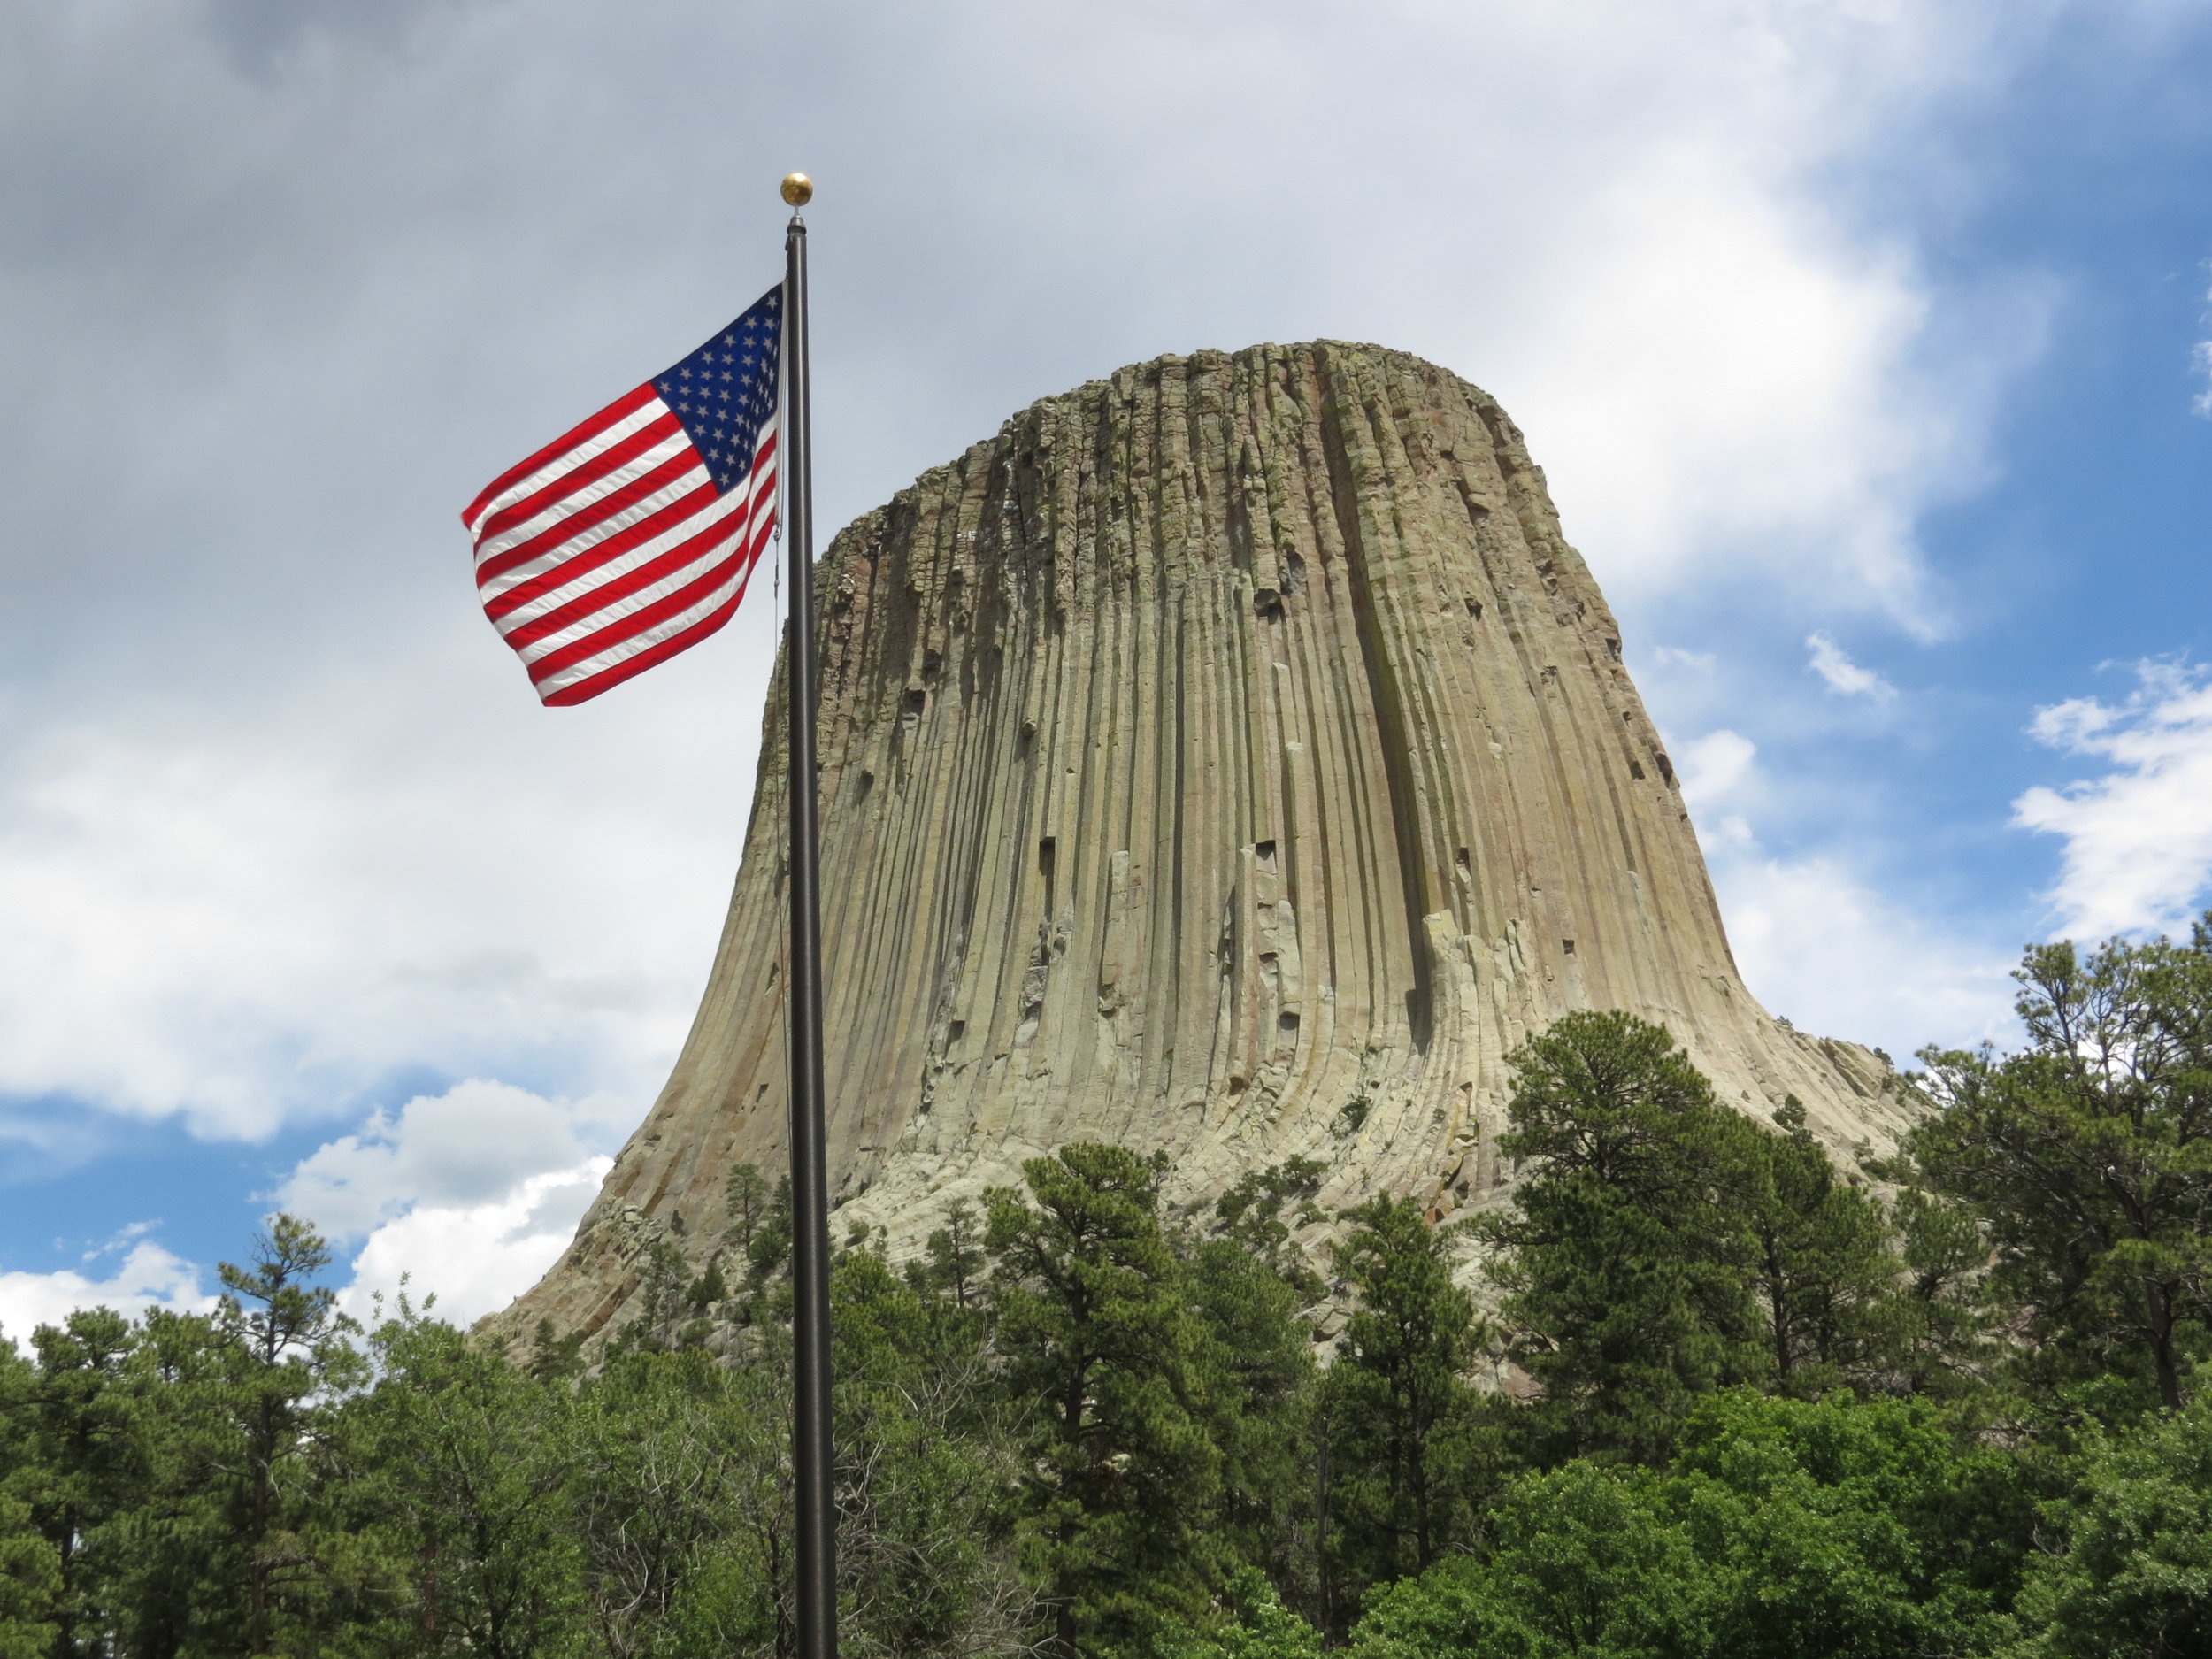 Devil's tower national monument  - wyoming, 2012 (remember .... close encounters of the third kind?)